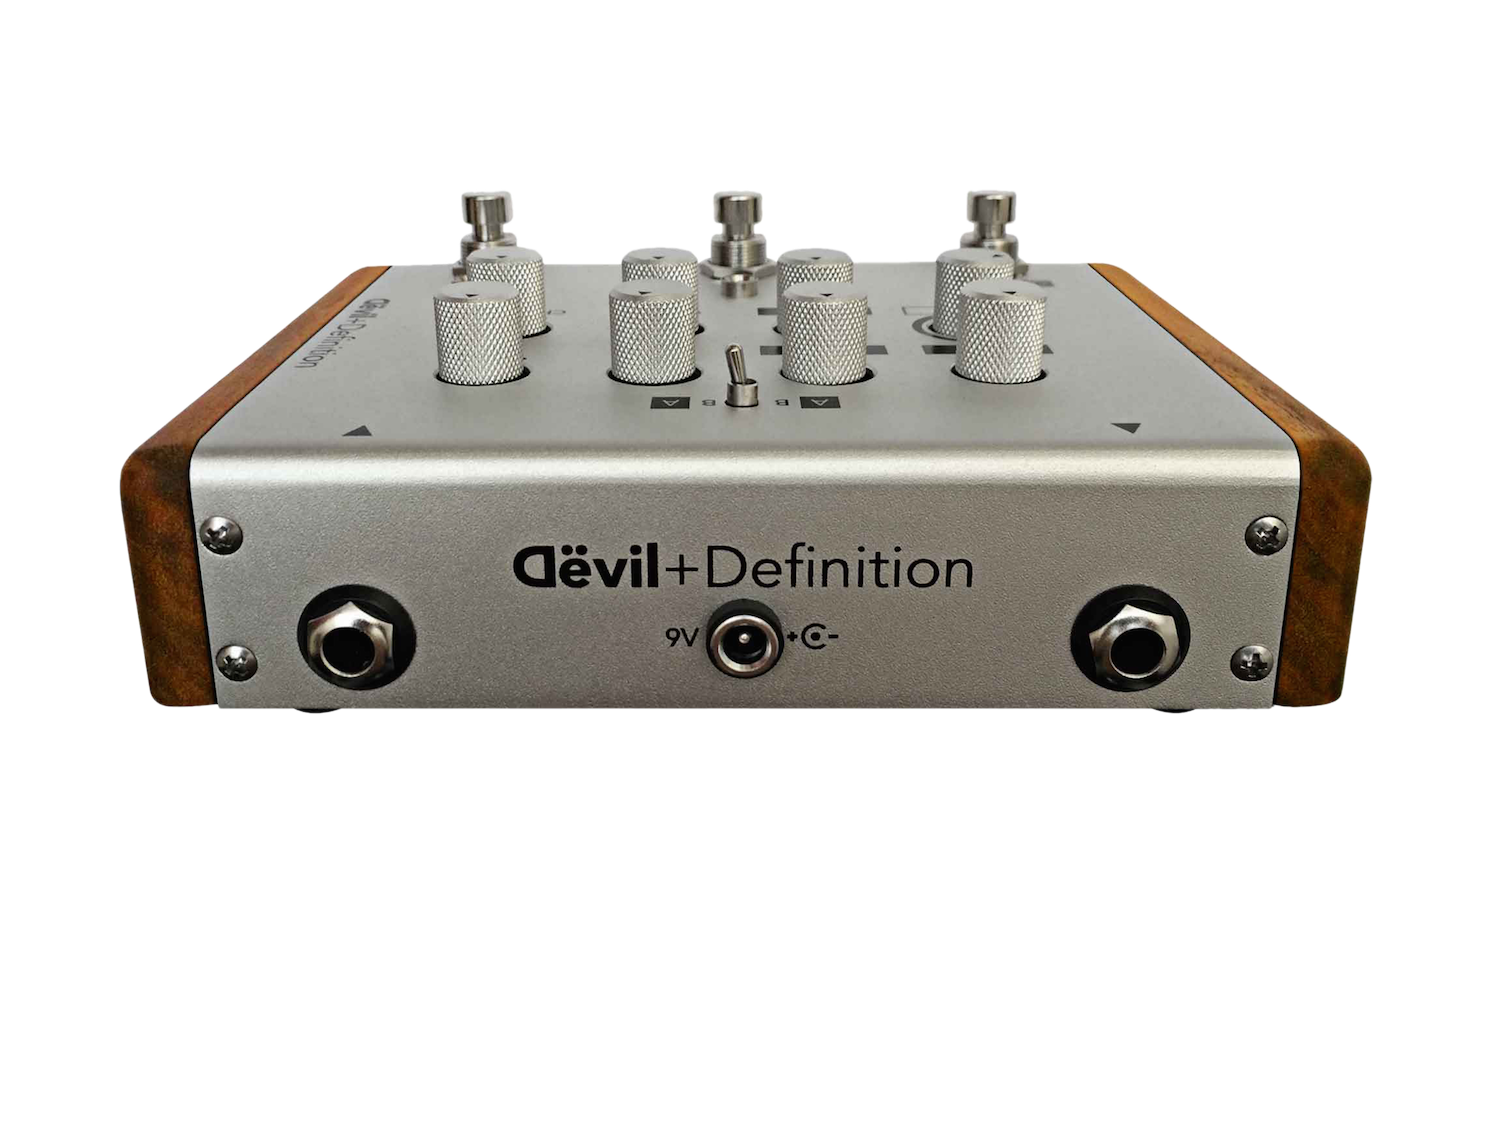 devil-and-definition-guitar-effect-pedal-christoph-gruber-fuzz-overdrive-03.png